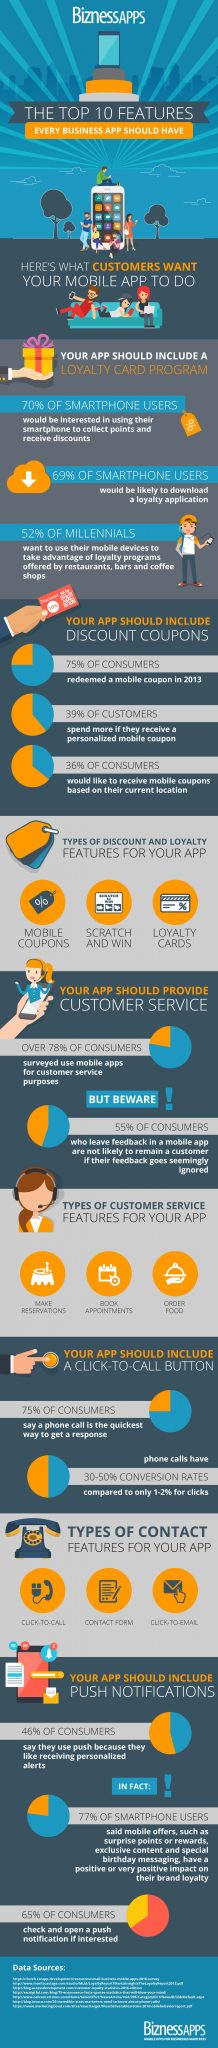 small business features infographic